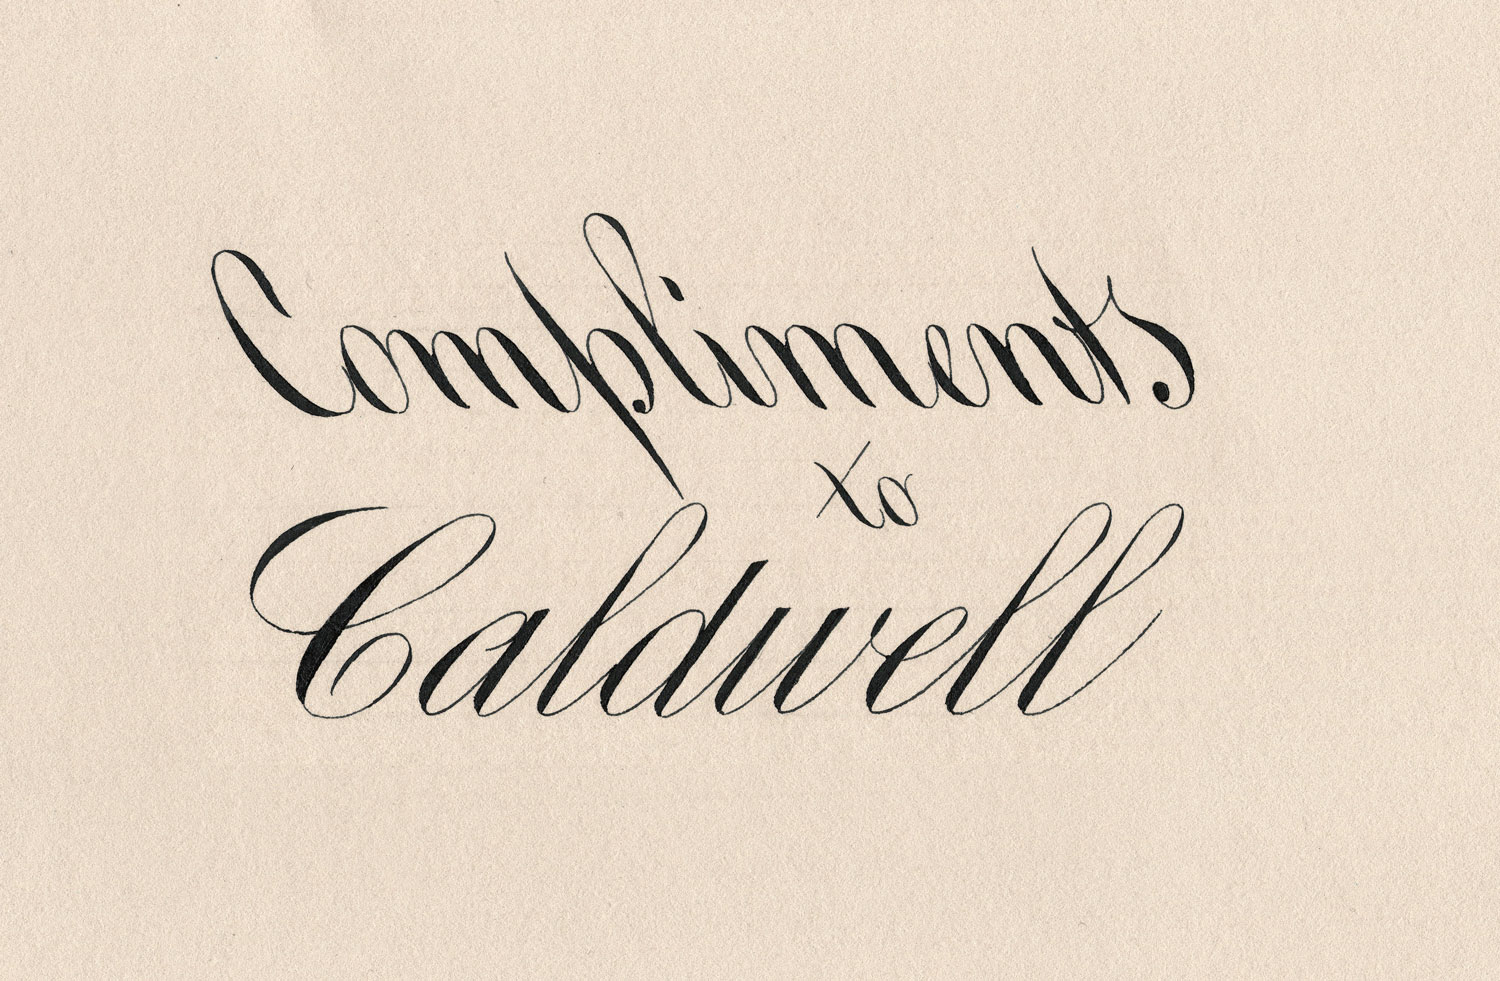 Compliments to Caldwell - Backslant Engrosser's Script by Masgrimes